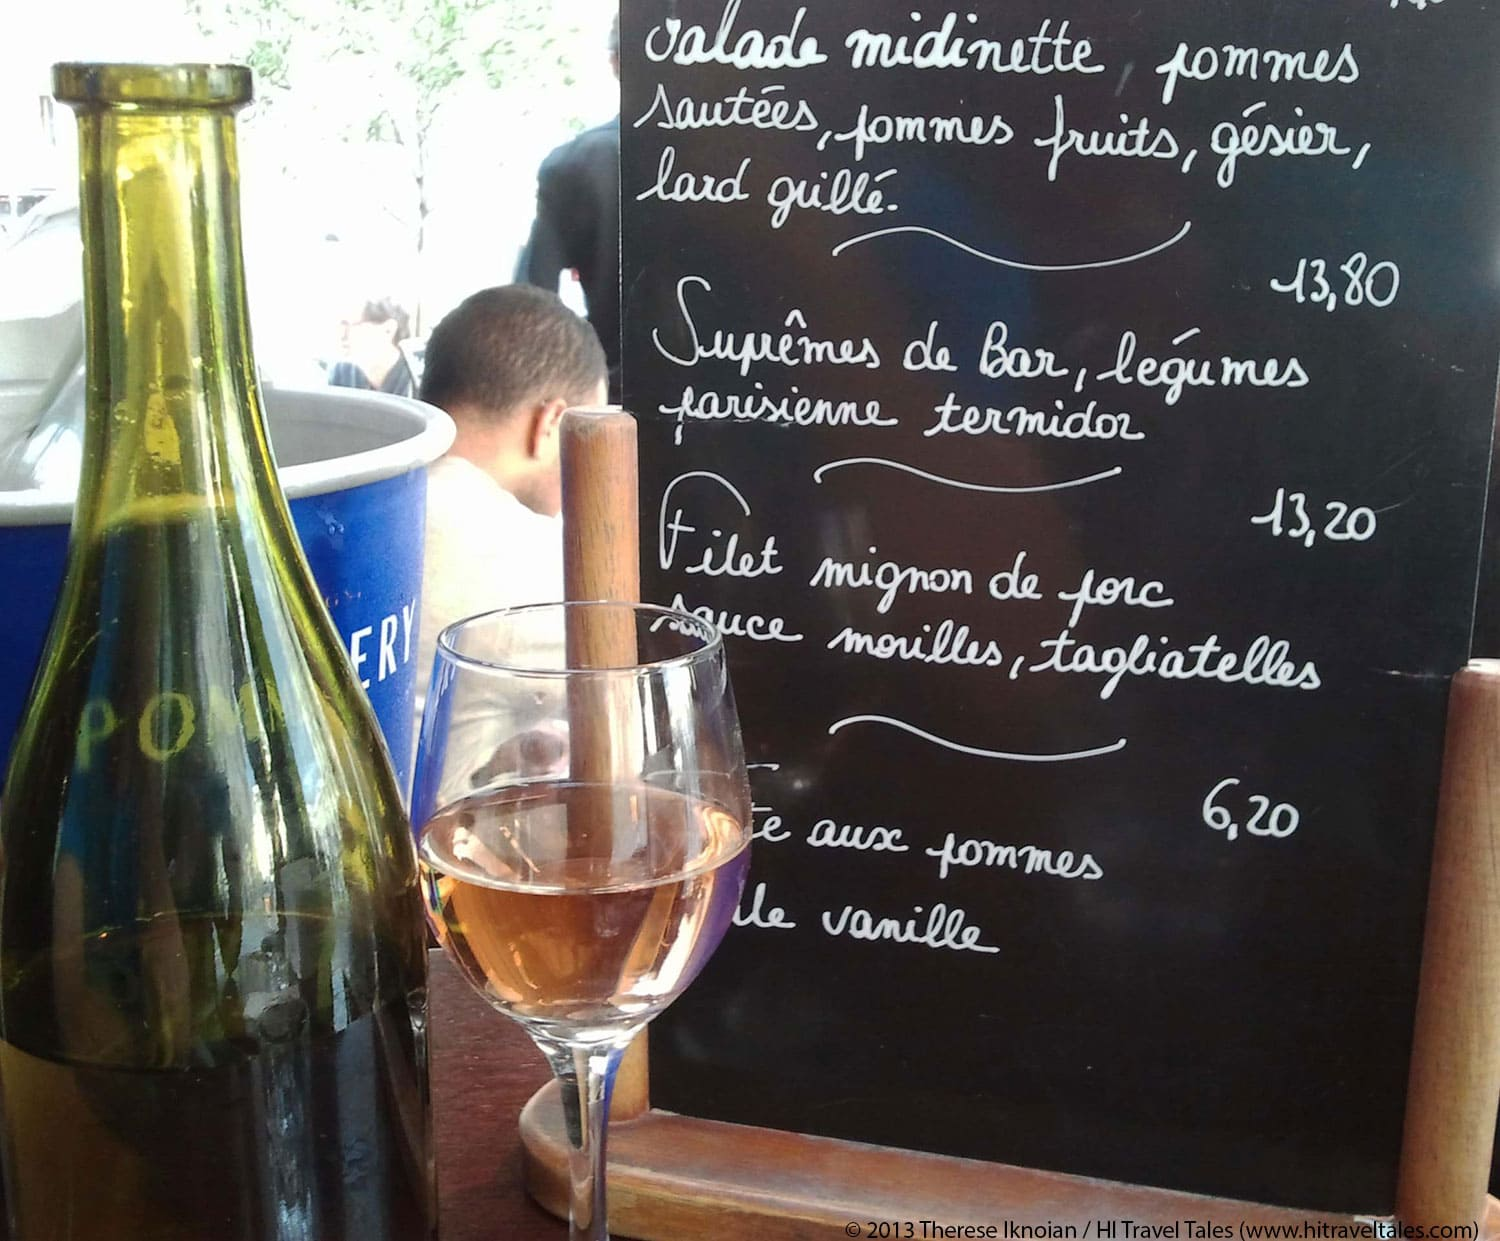 Passing time in Paris at Le Comptoir du Pantheon